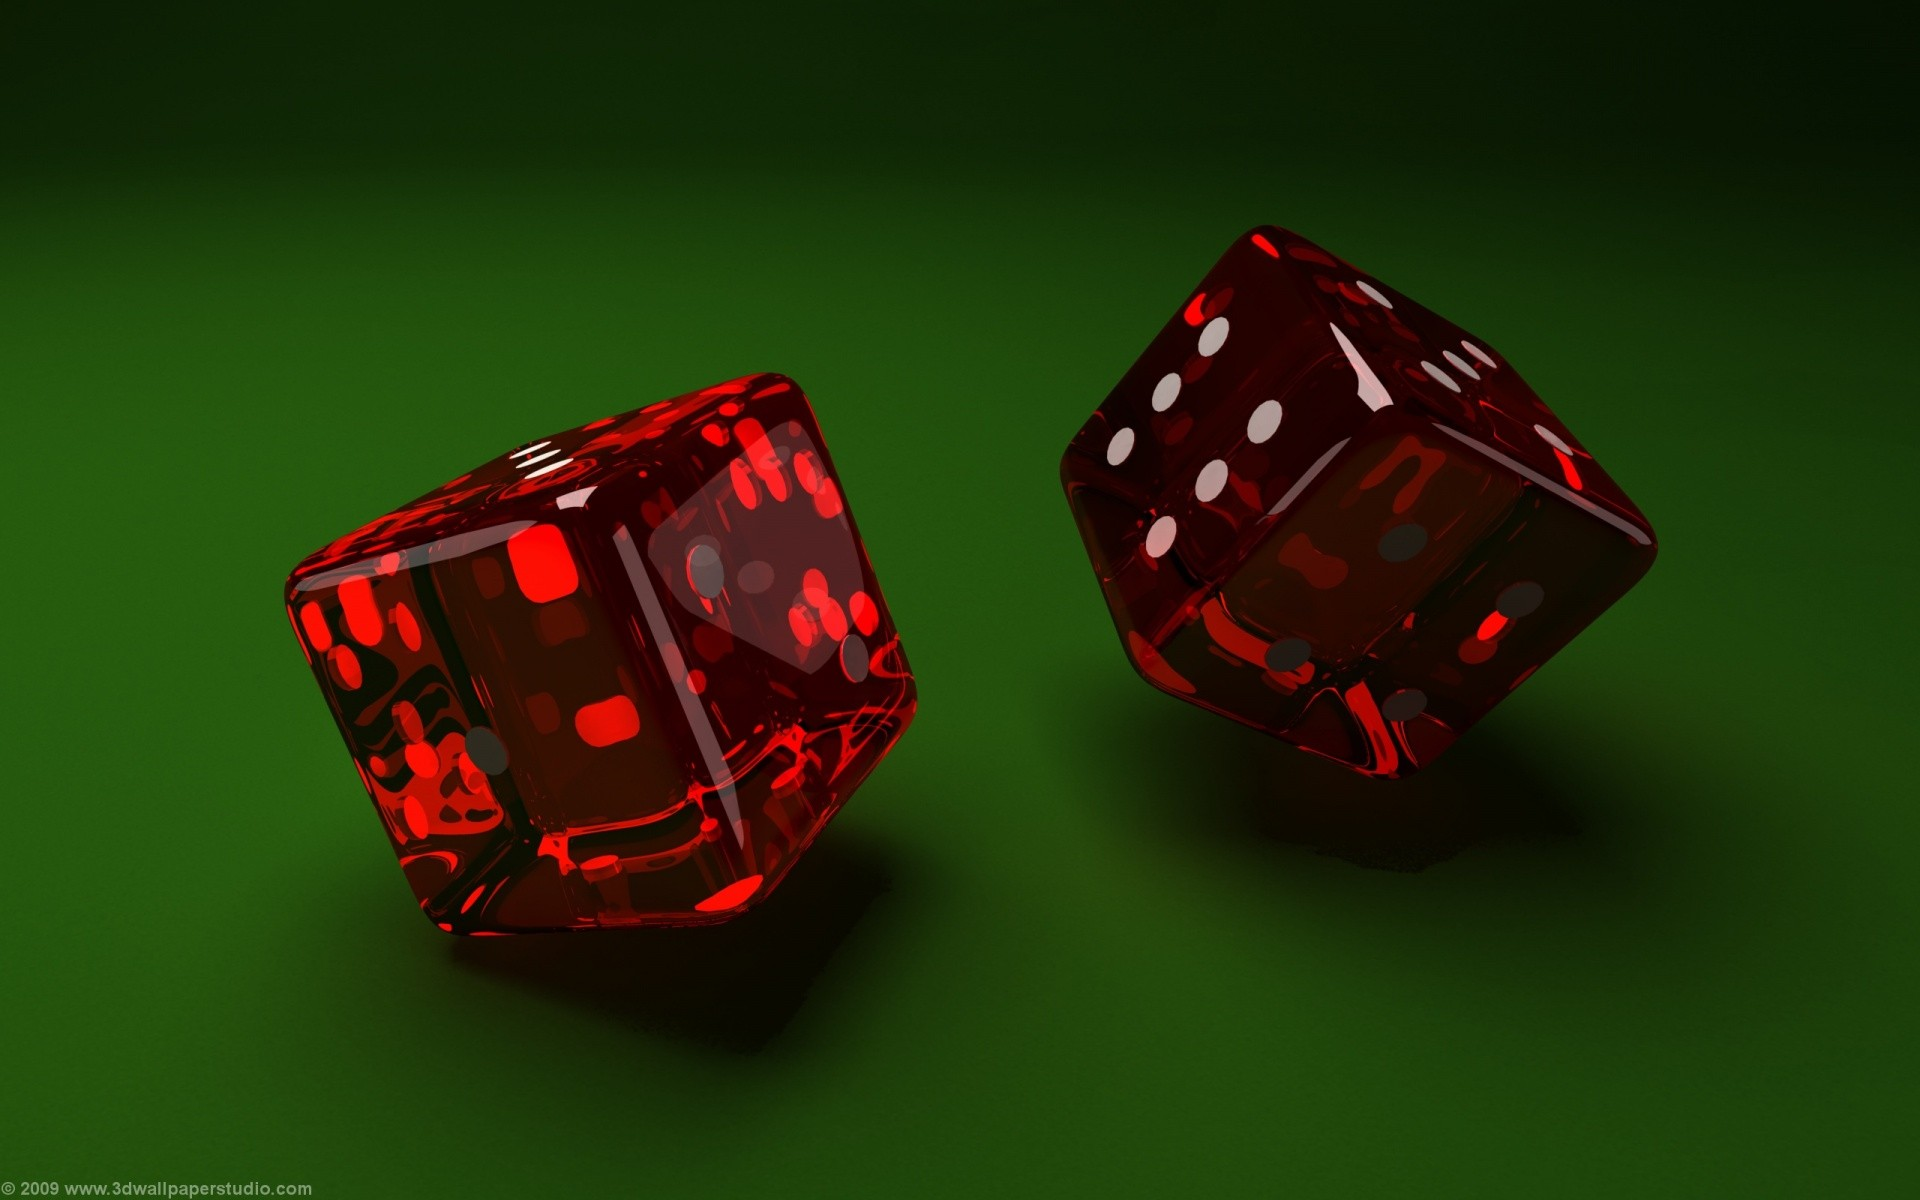 The Leaked Trick To Online Casino Discovered